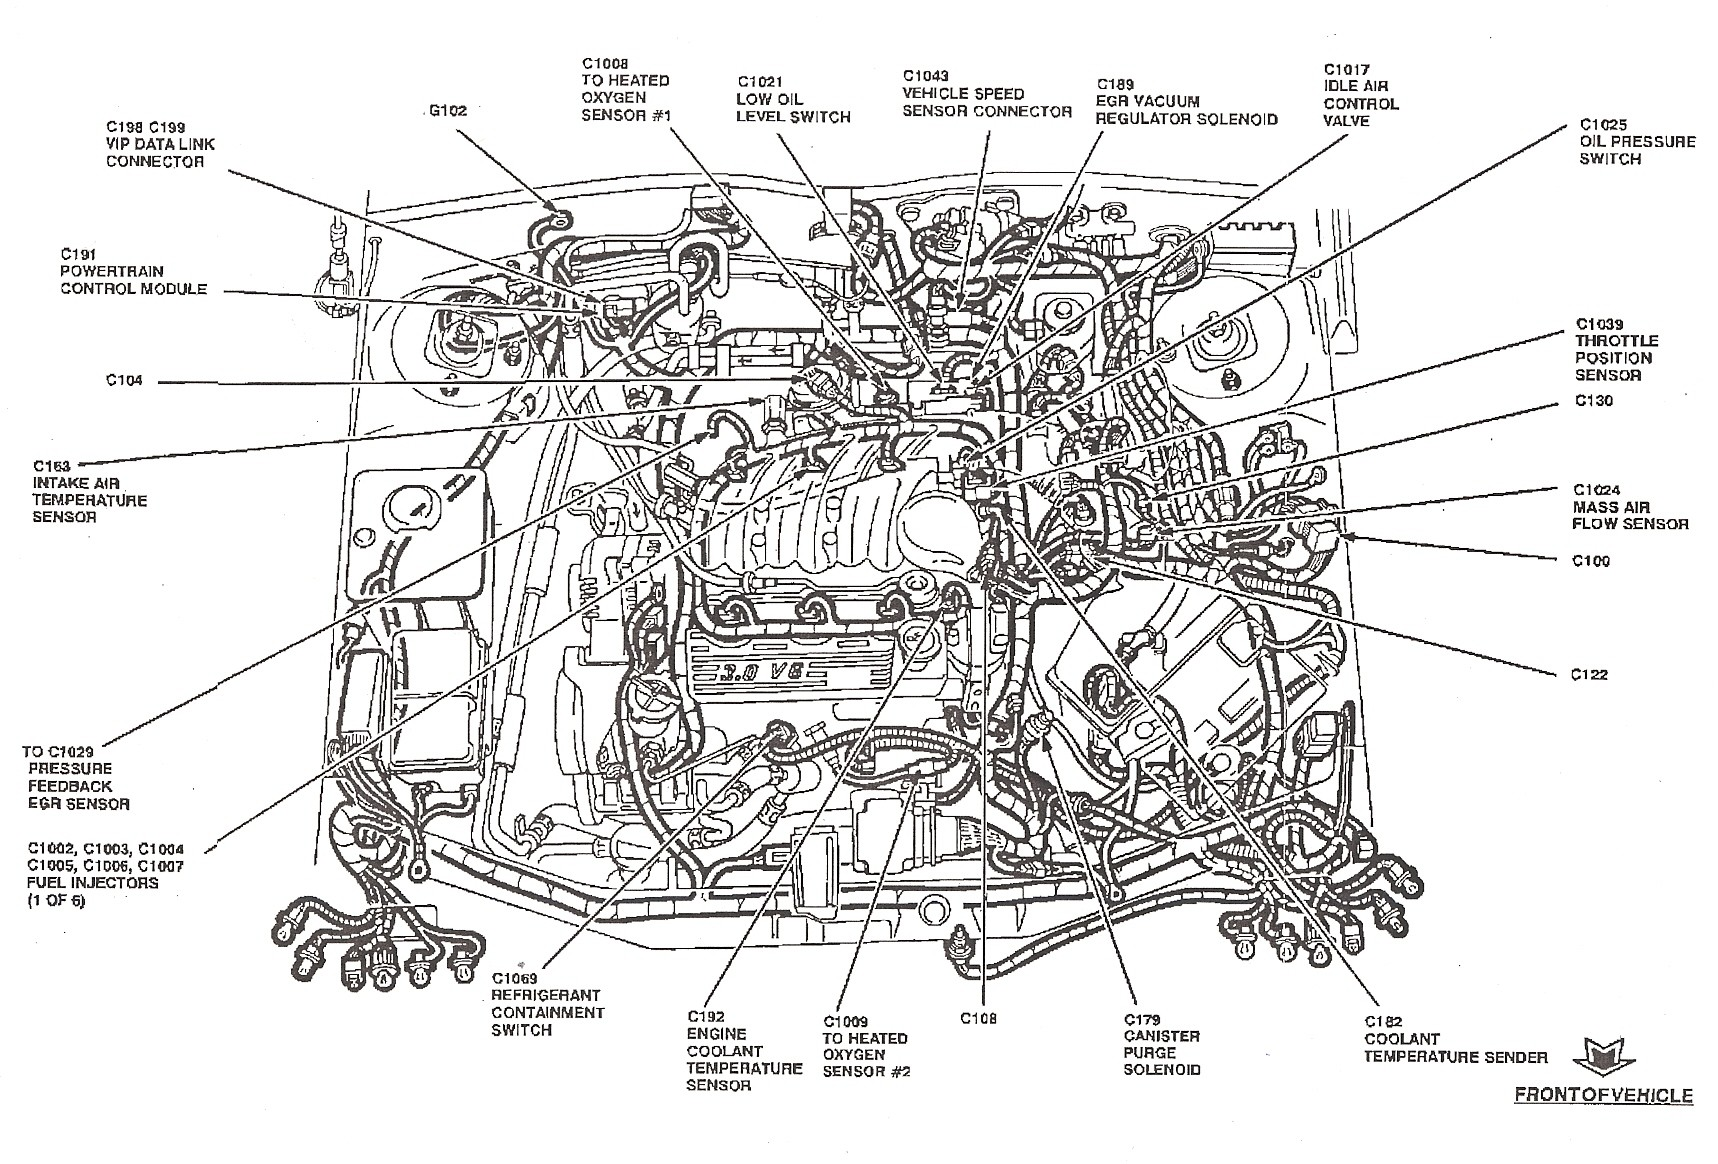 2003 Focus Motor Diagram Custom Wiring 2001 Ford Stereo Zetec Engine Example Electrical Rh 162 212 157 63 2005